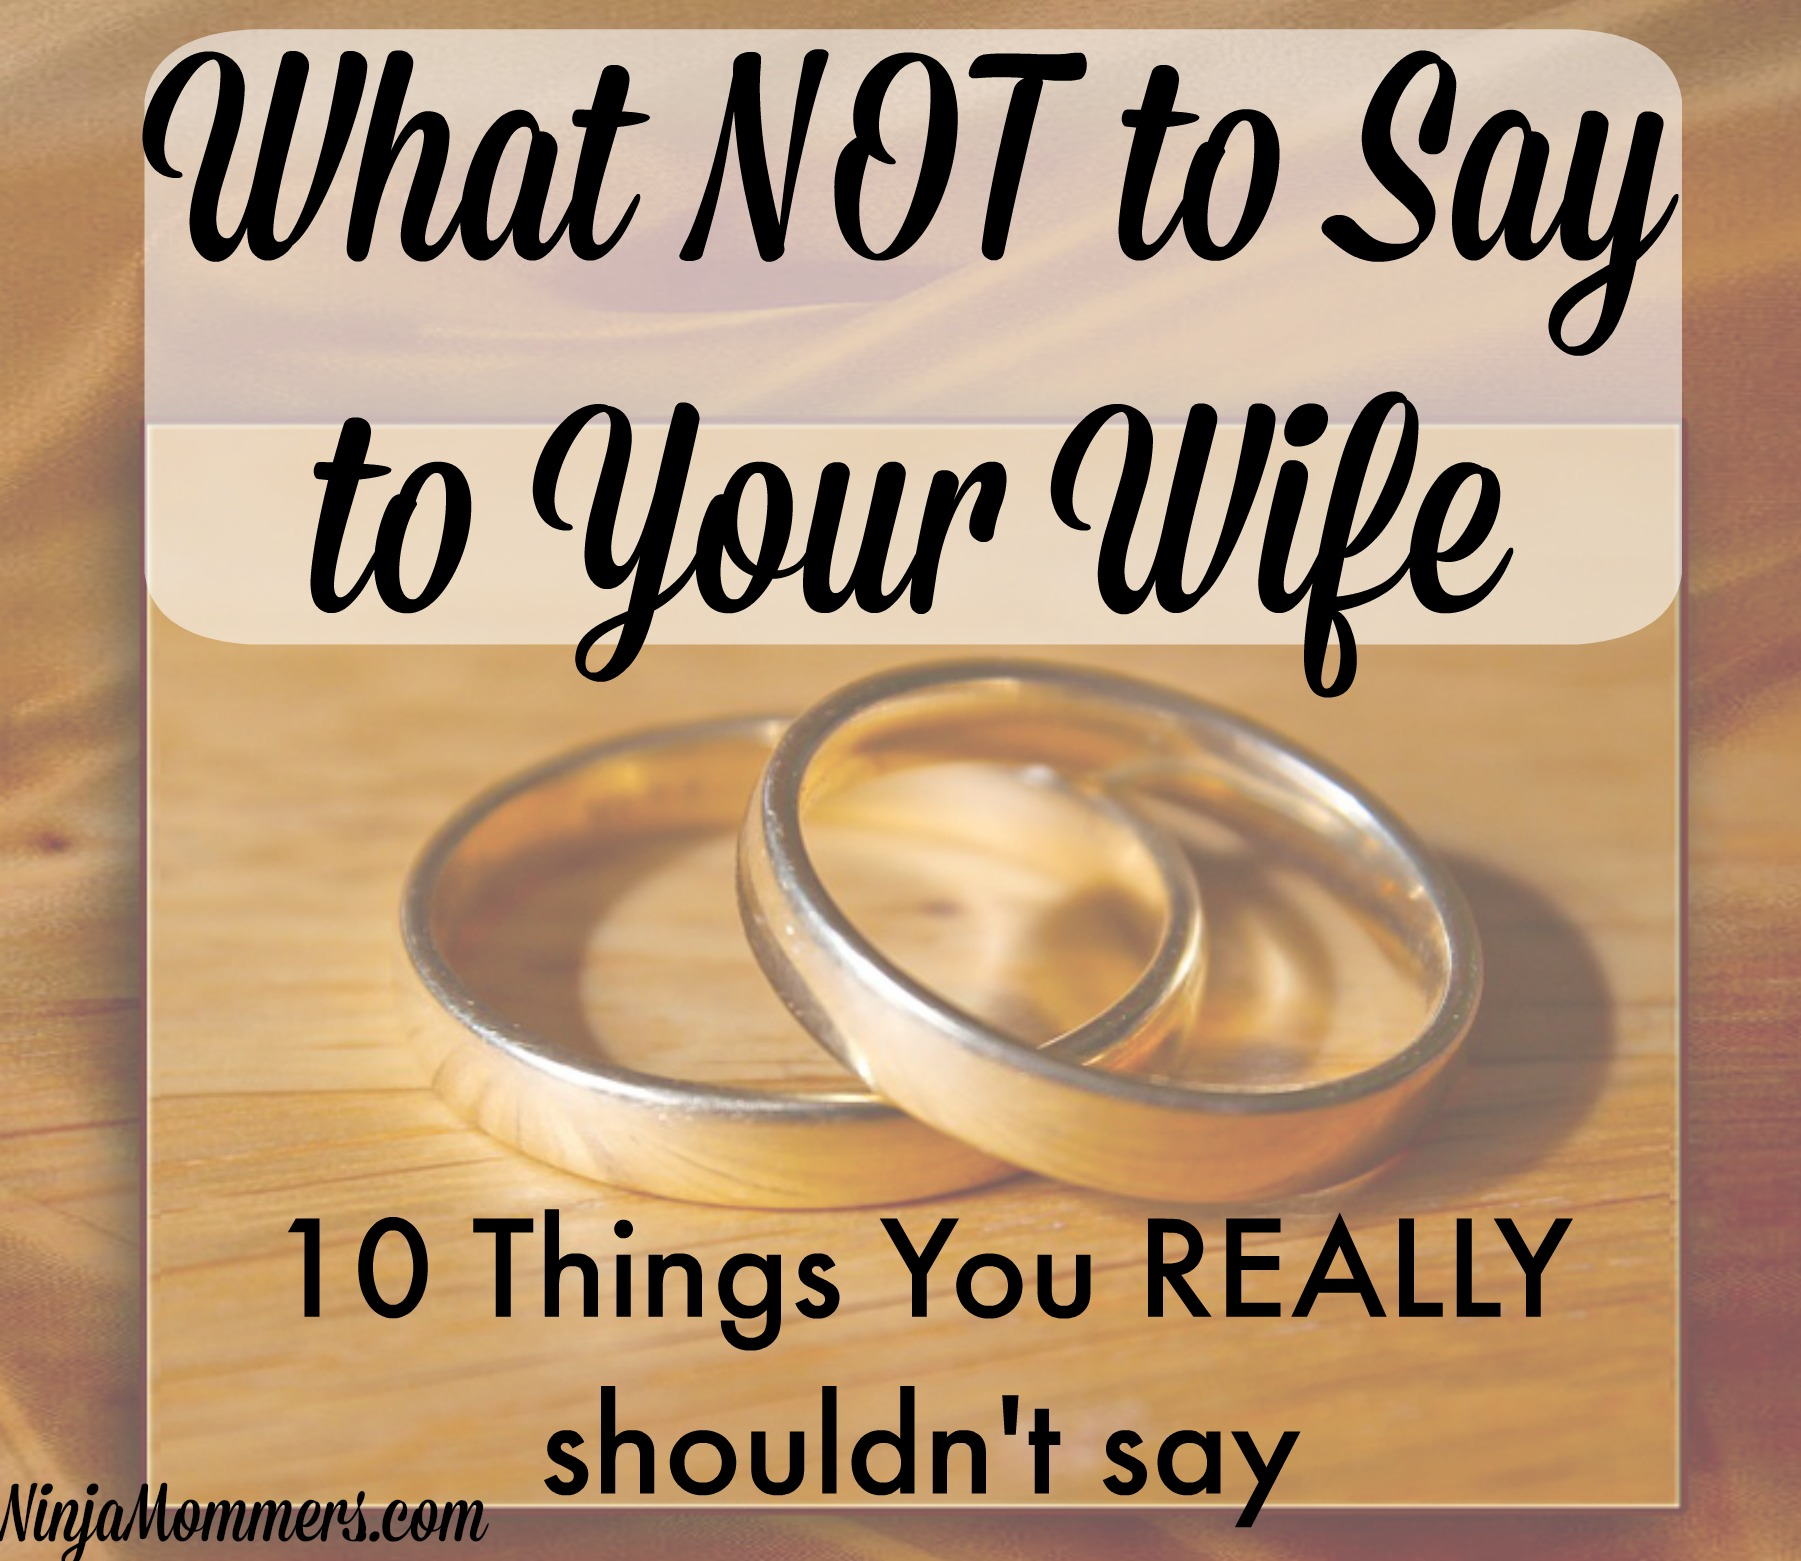 What Not to Say to your Wife- 10 Things NOT to say